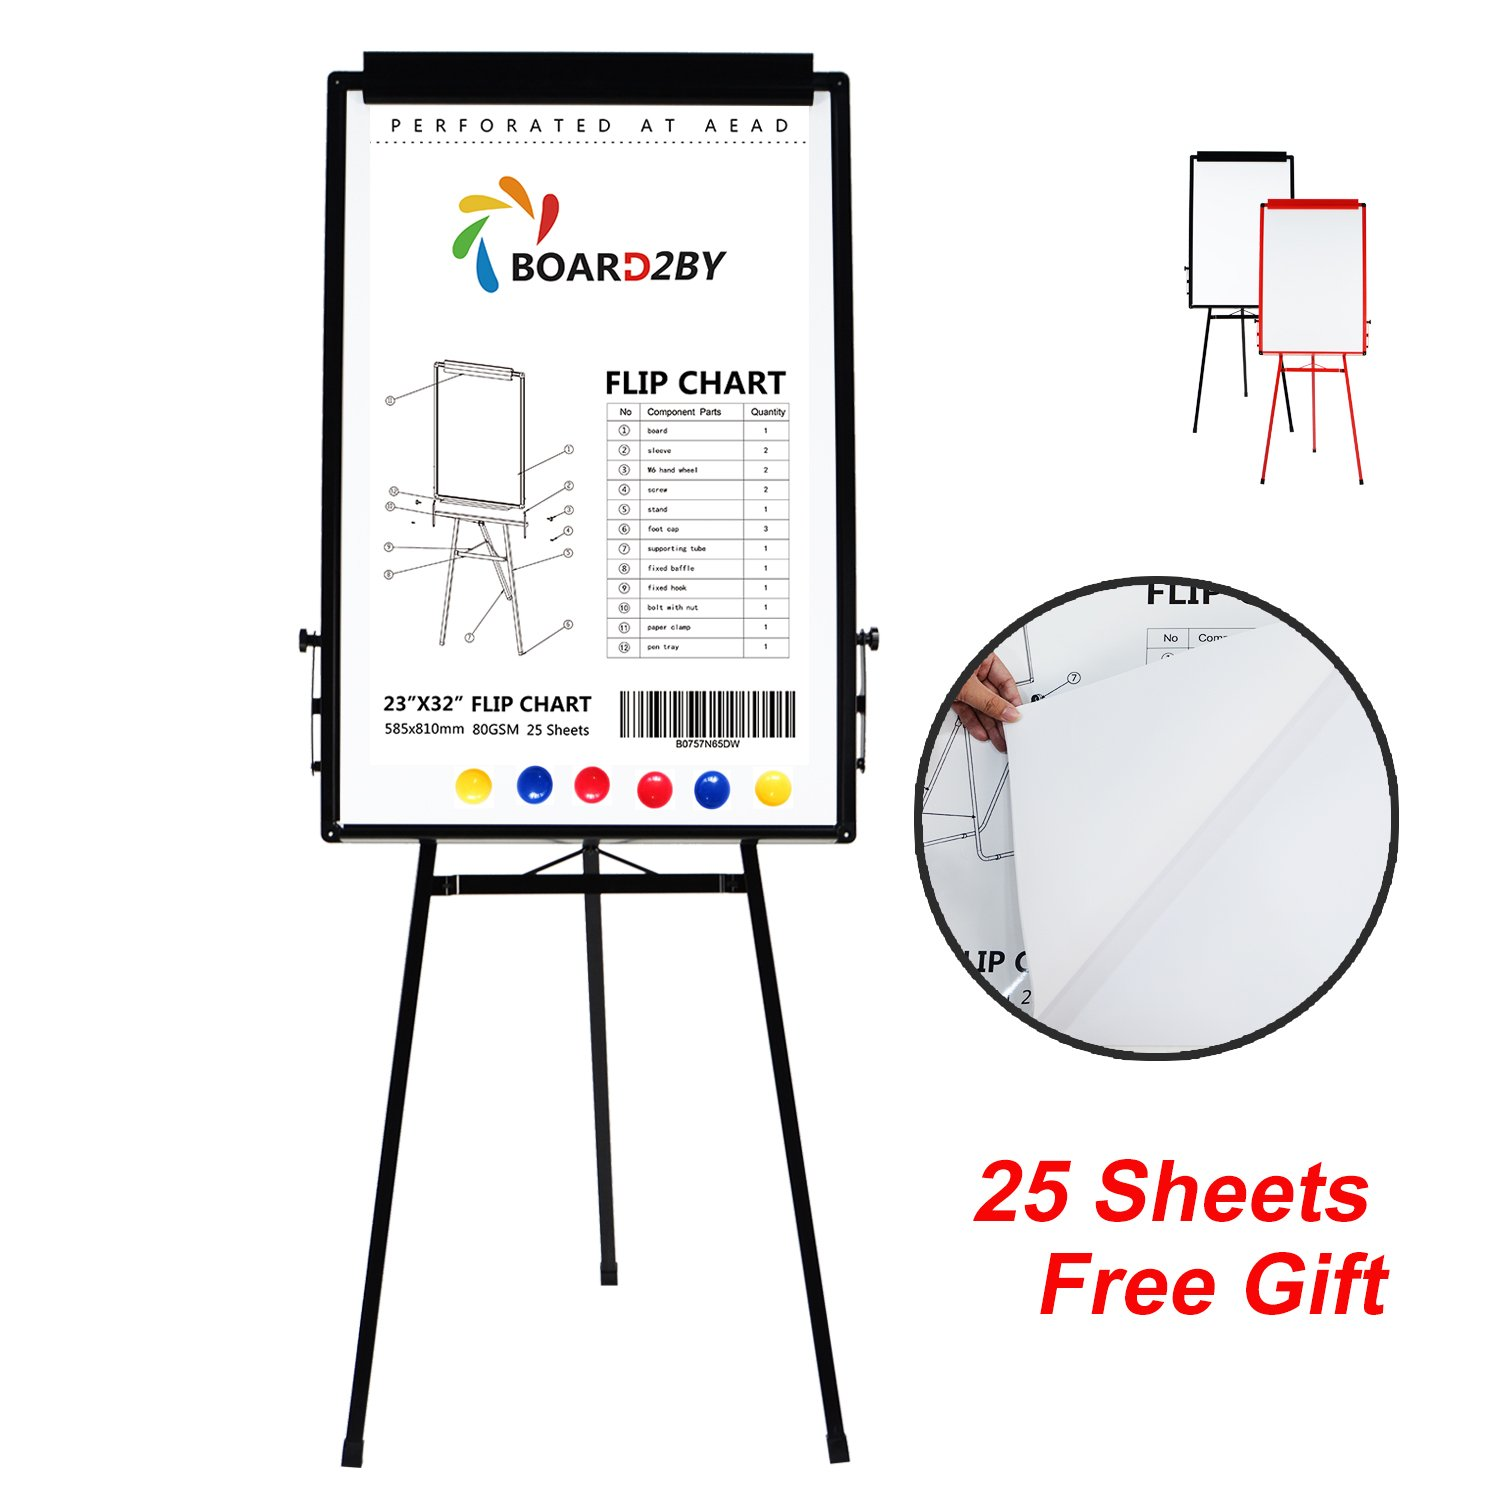 Board2by Tripod Whiteboard Stand/ Flipchart Easel - 24'' x 36'' Portable Aluminum Frame Magnetic White Dry Erase Board, 25-Sheet Easel Papers and 6 Magnets for Free, Black